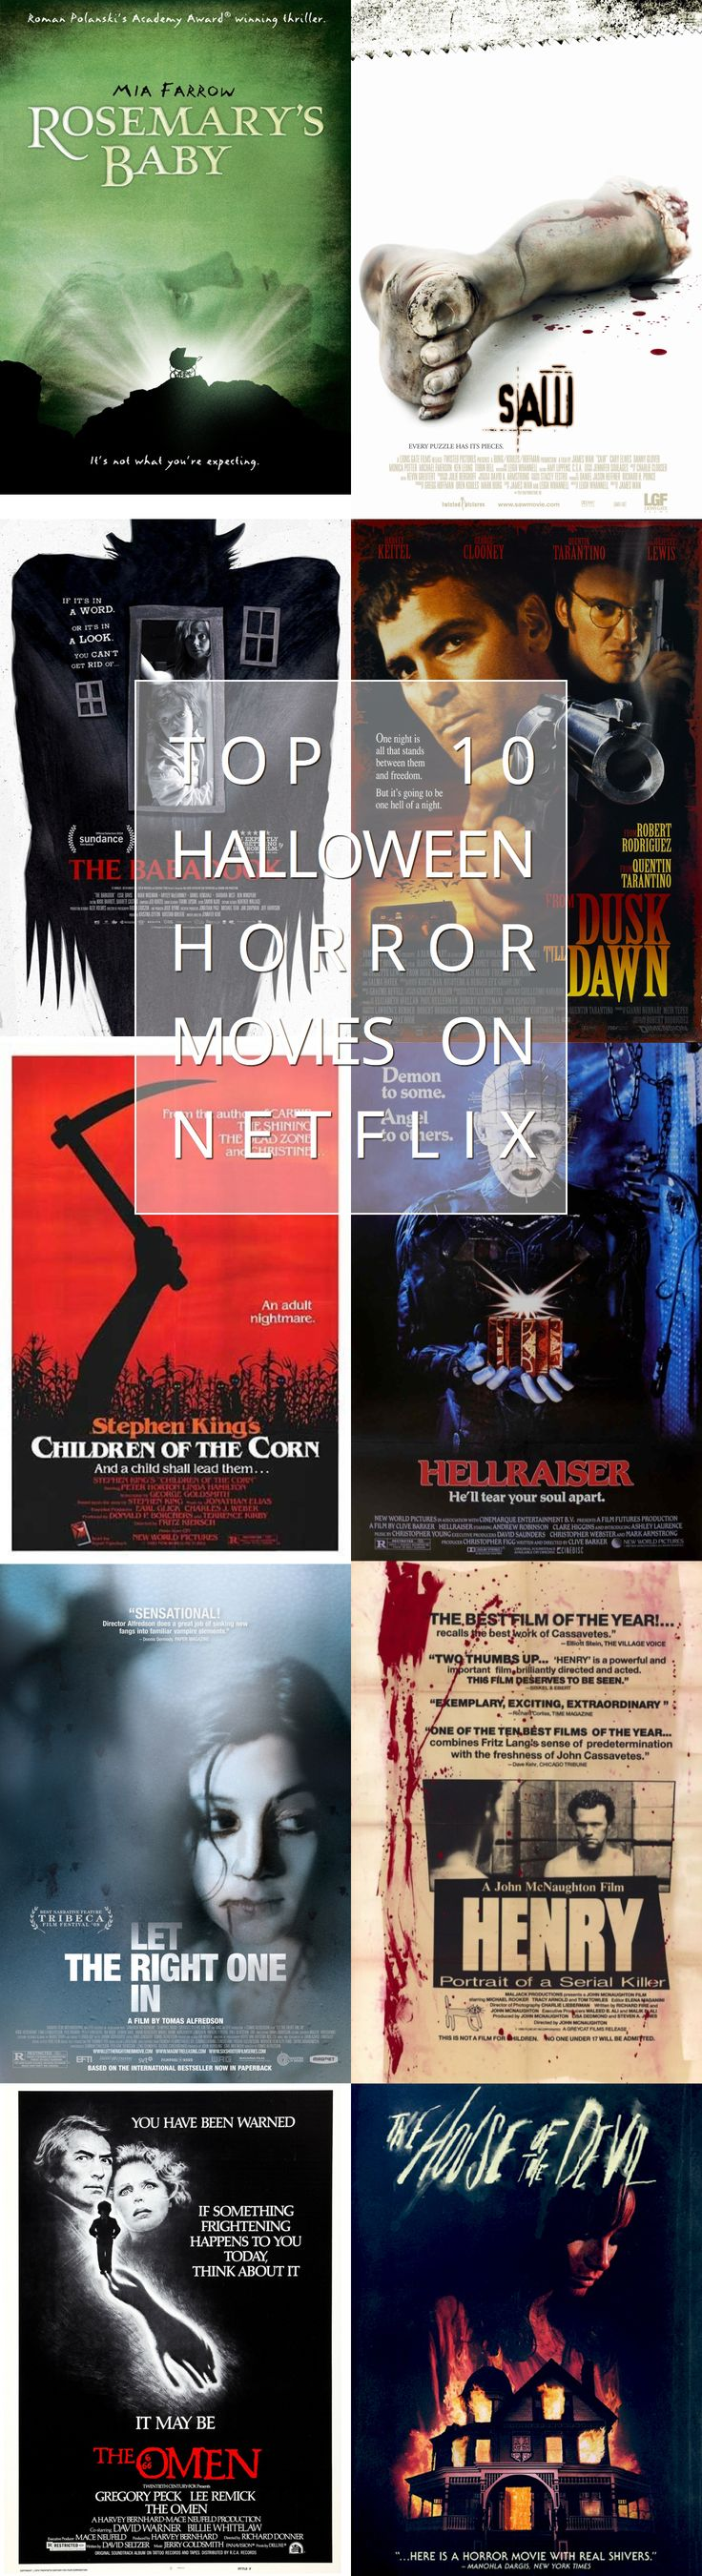 best scary movies on netflix right now reddit